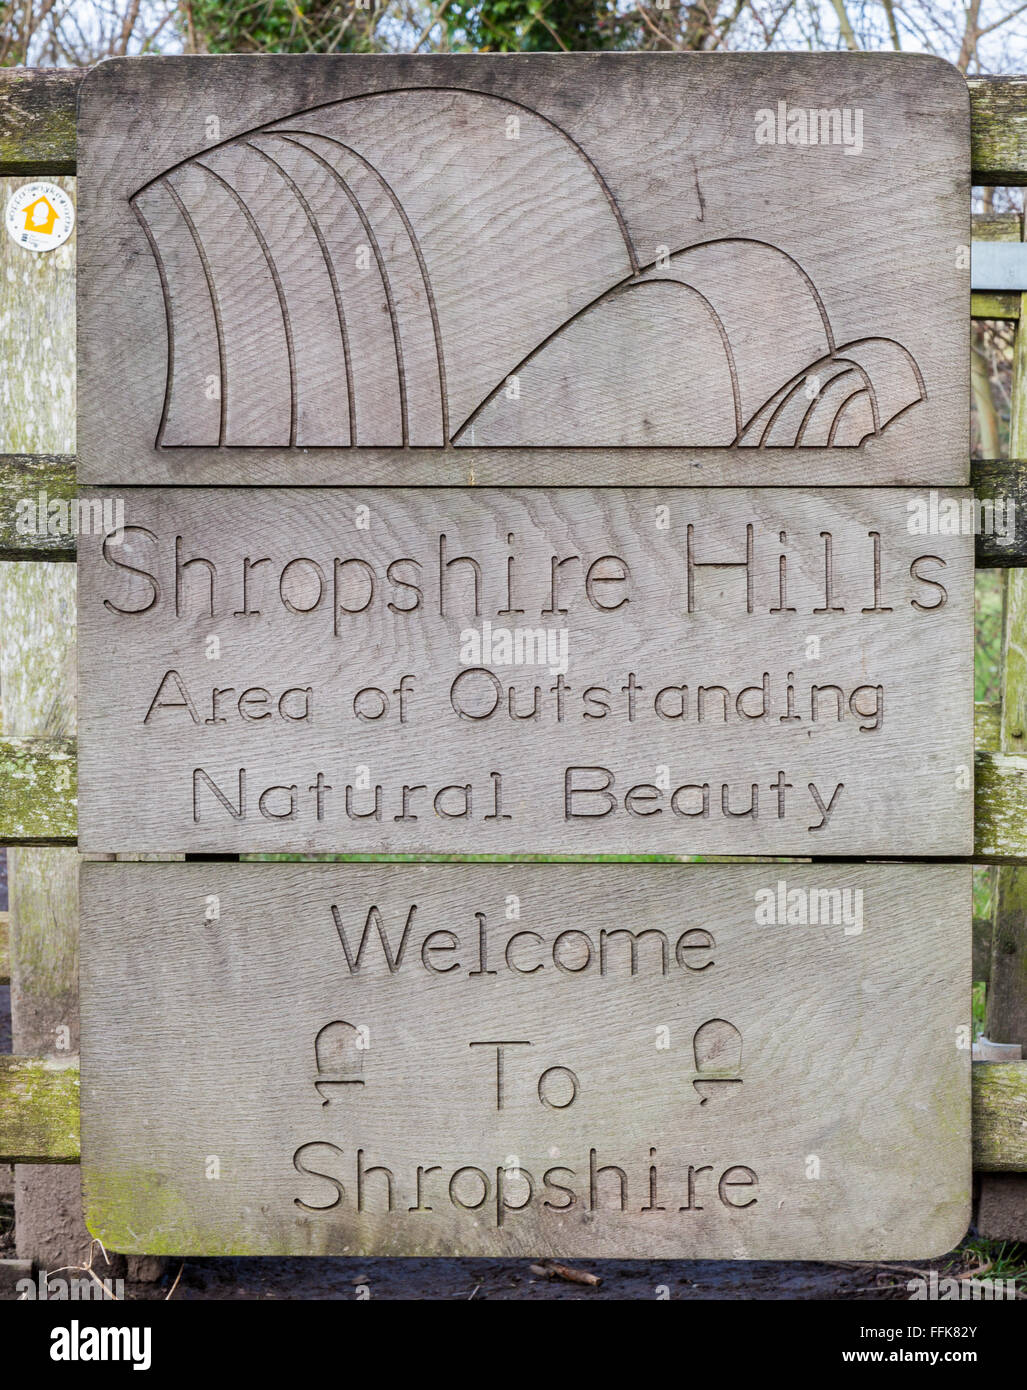 Shropshire Hills Area of Outstanding Natural beauty sign on Offa's Dyke on the English/Welsh border near Knighton, - Stock Image